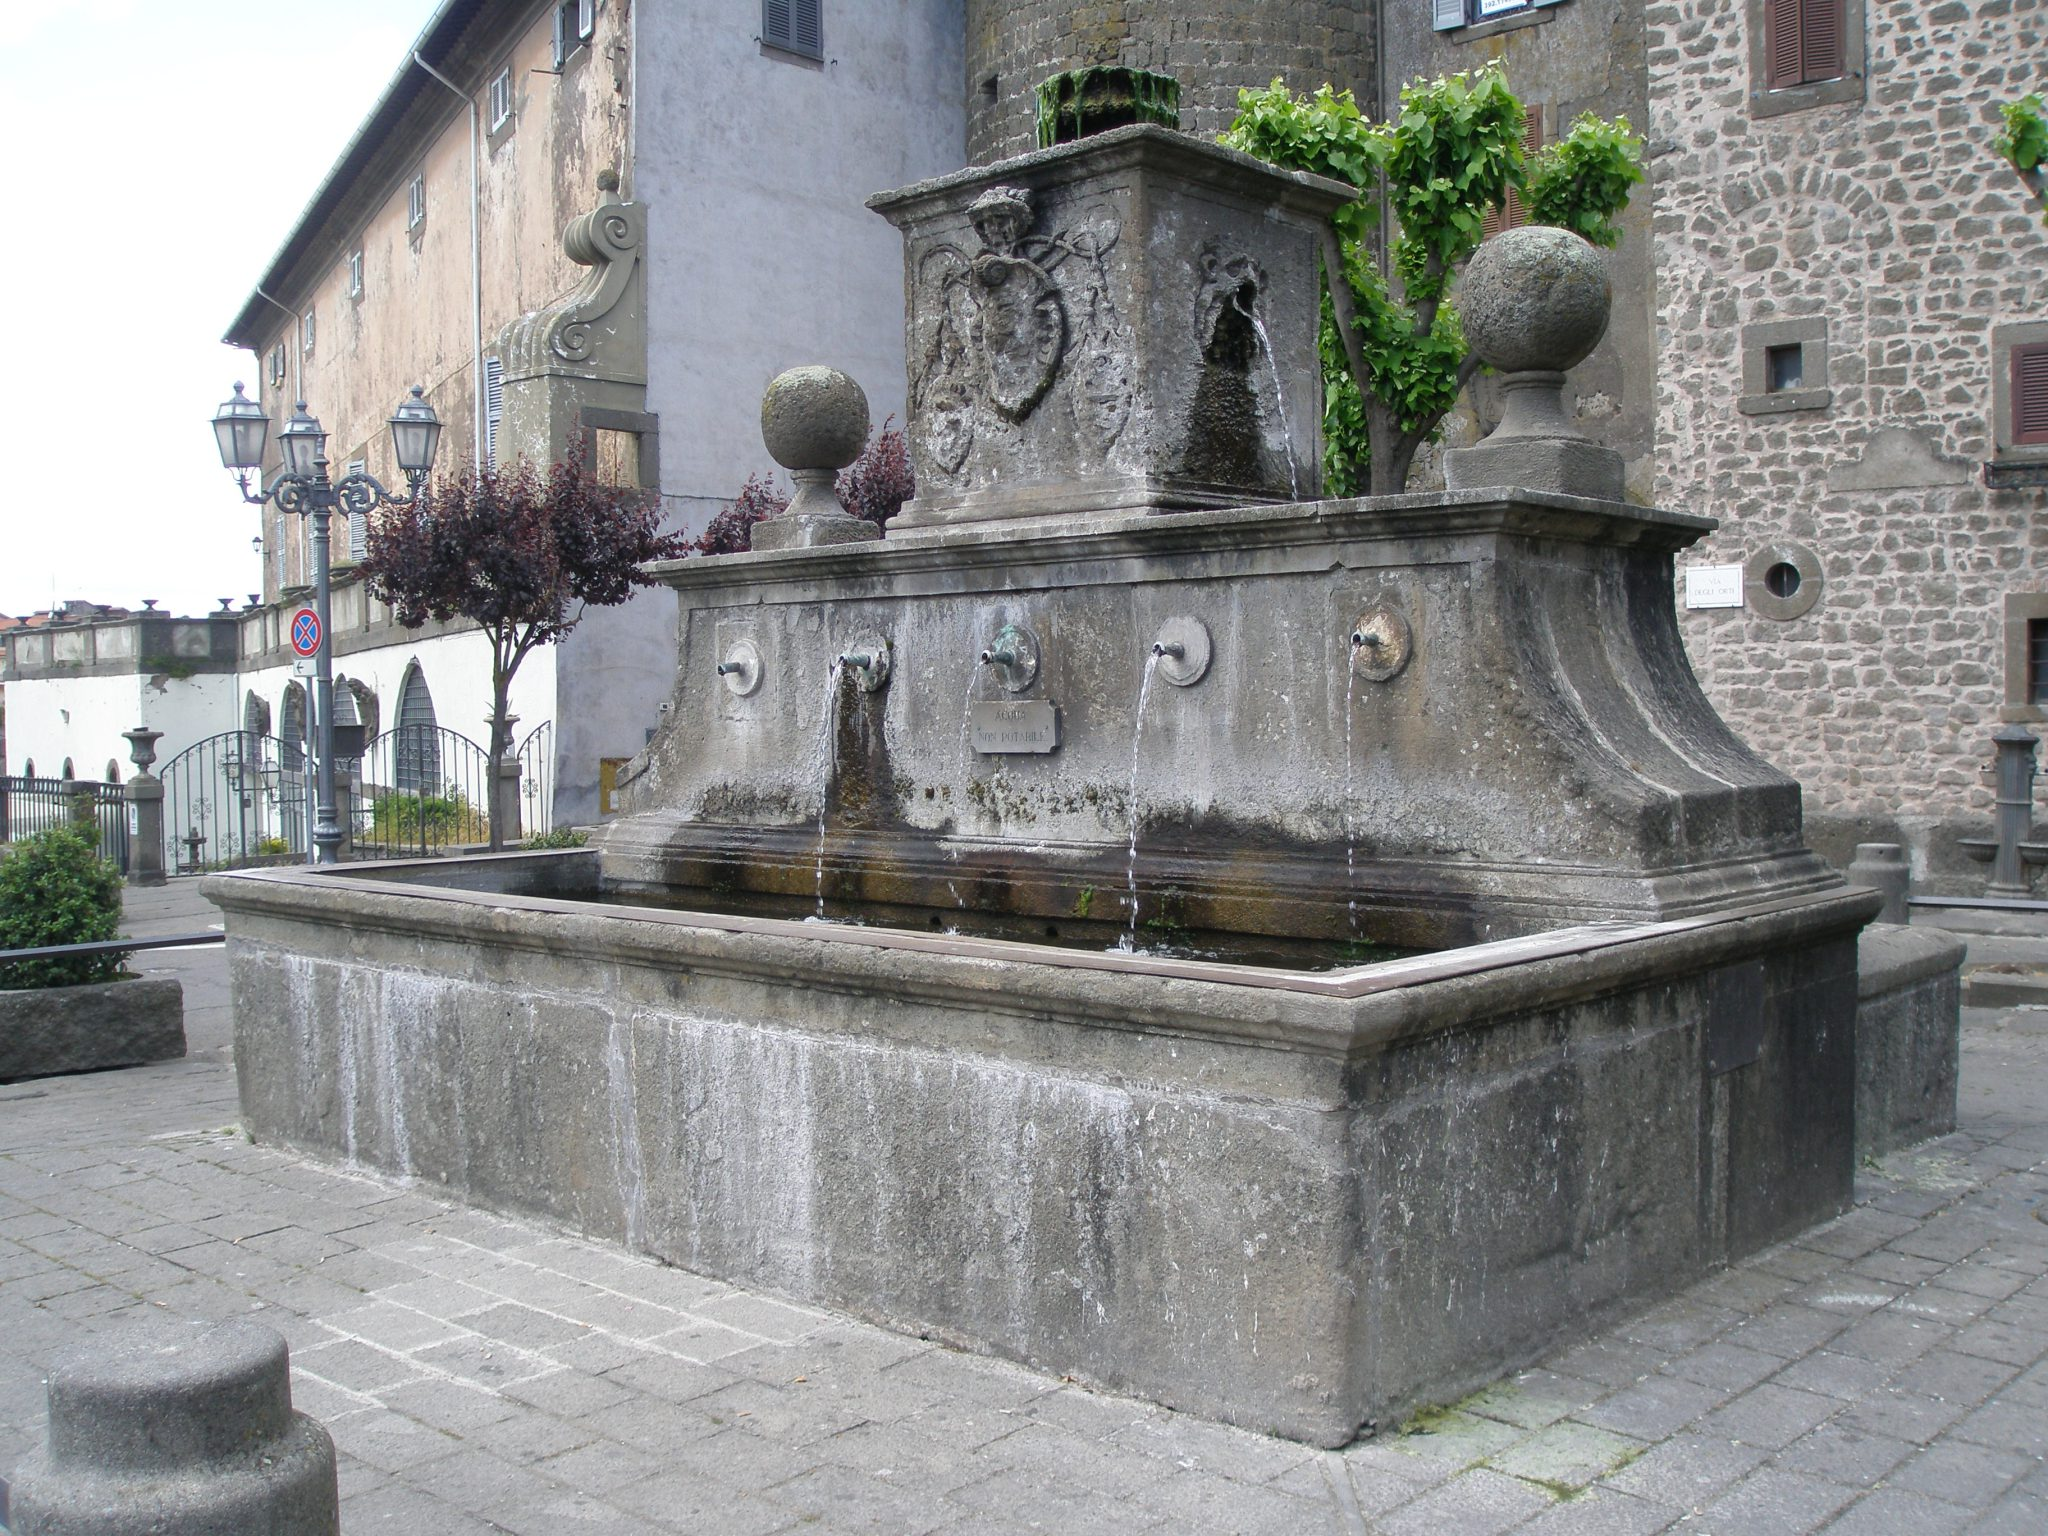 Fountain on Bagnaia's main Piazza